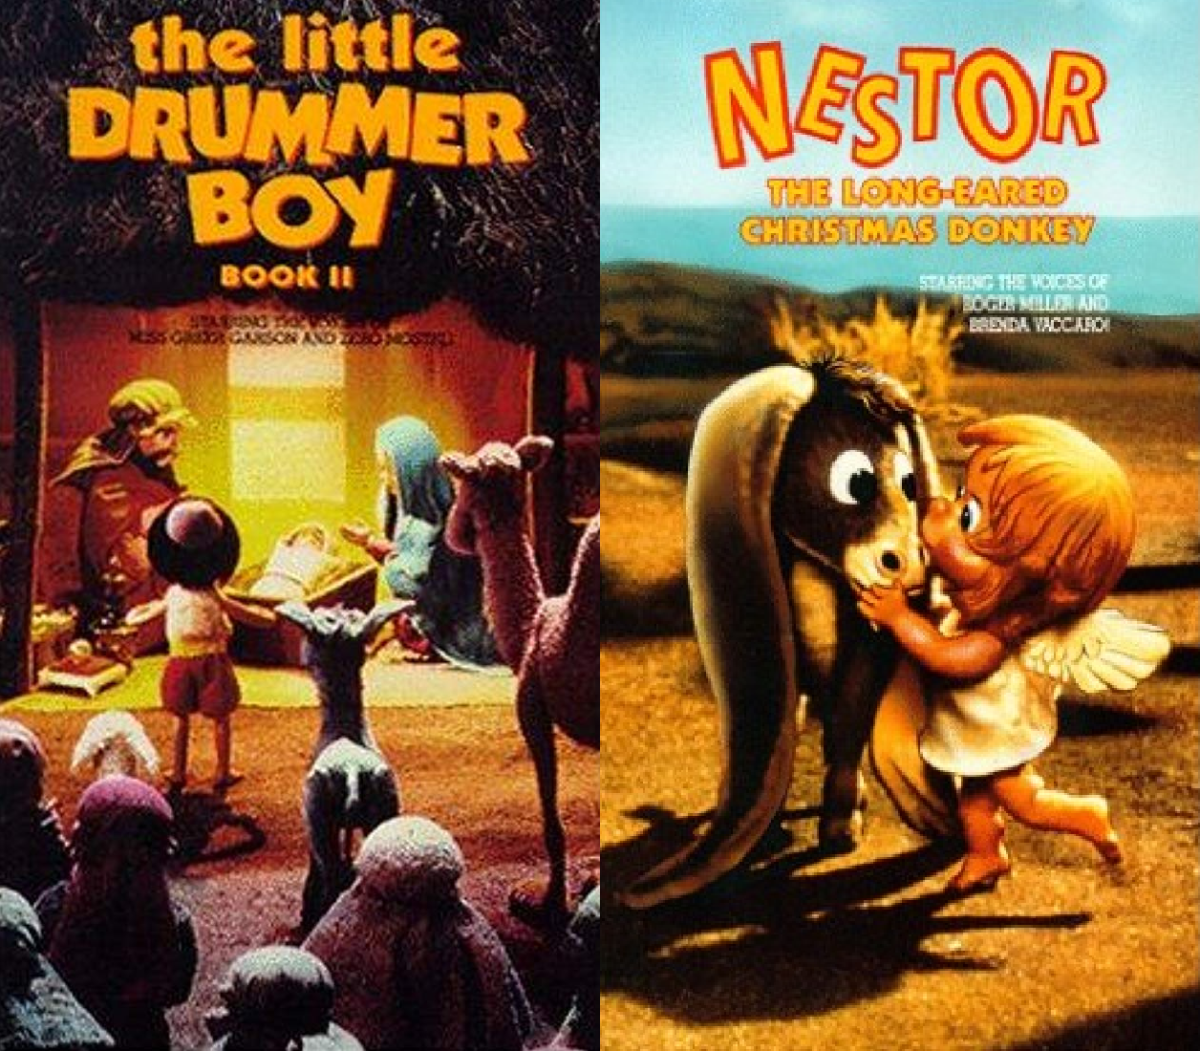 Rankin/Bass Retrospective: 'The Little Drummer Boy Book II'/'Nestor the Long-Eared Christmas Donkey'